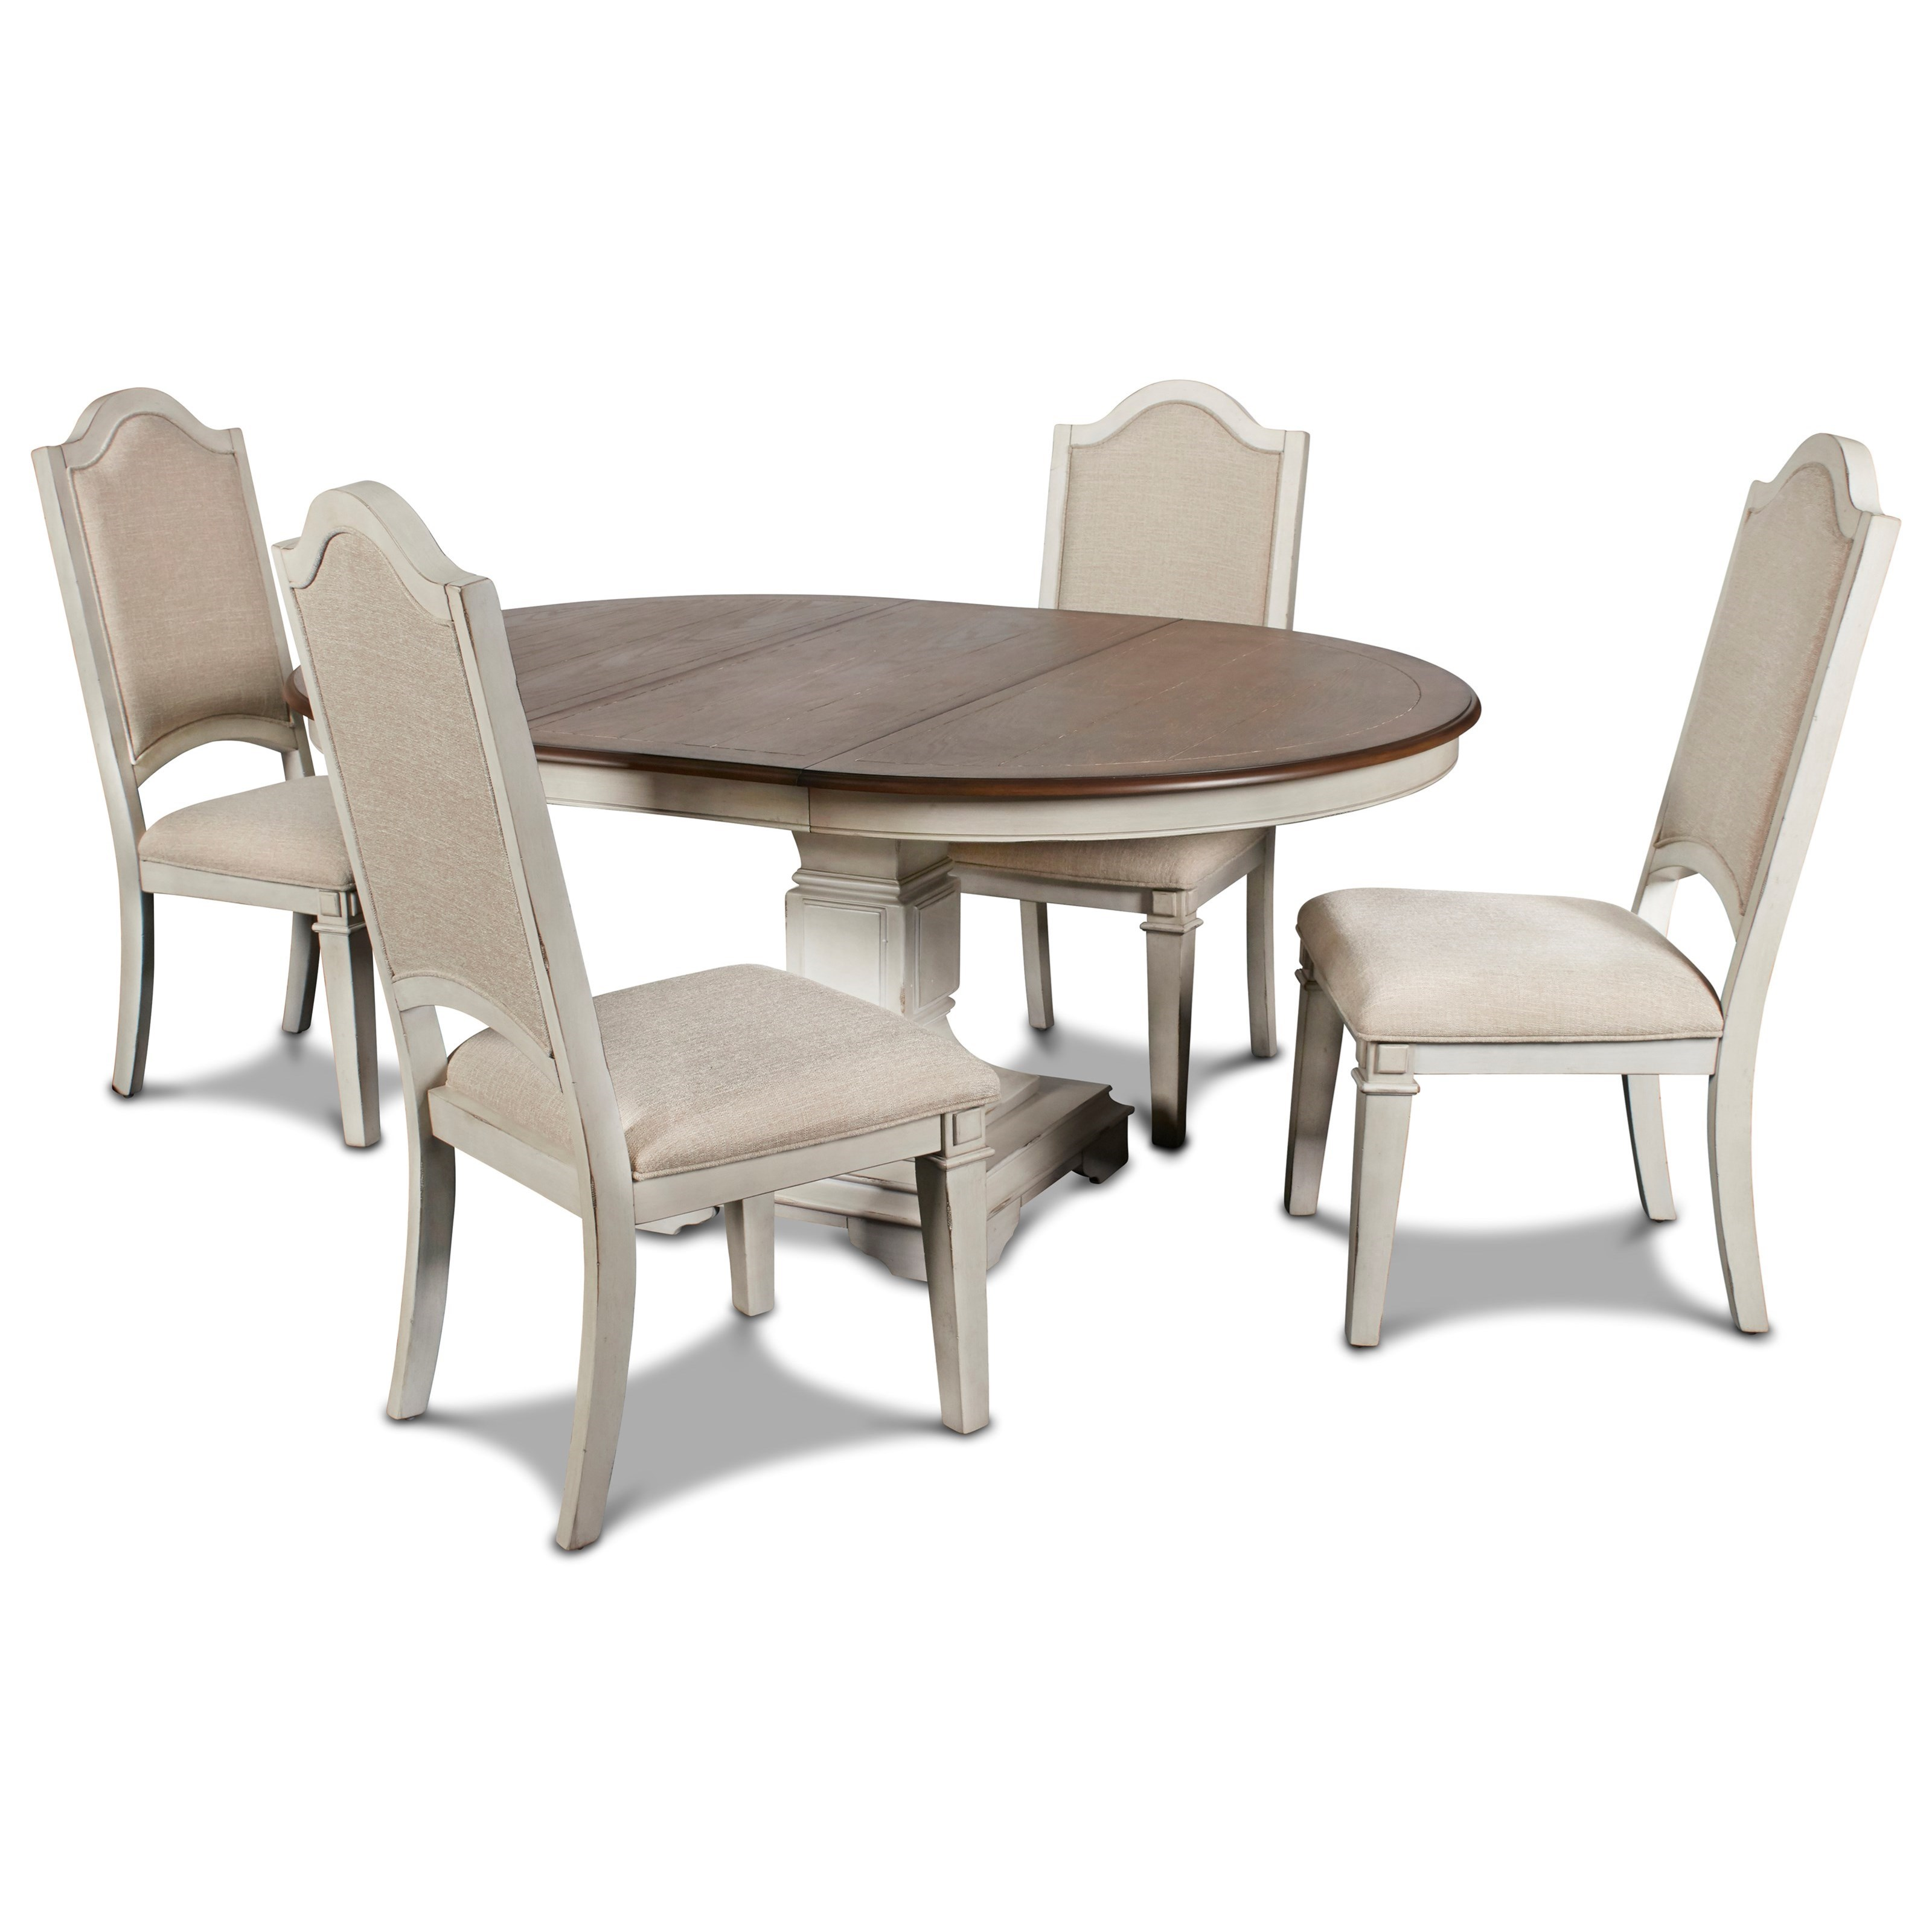 Anastasia 5-Piece Table and Chair Set by New Classic at Rife's Home Furniture